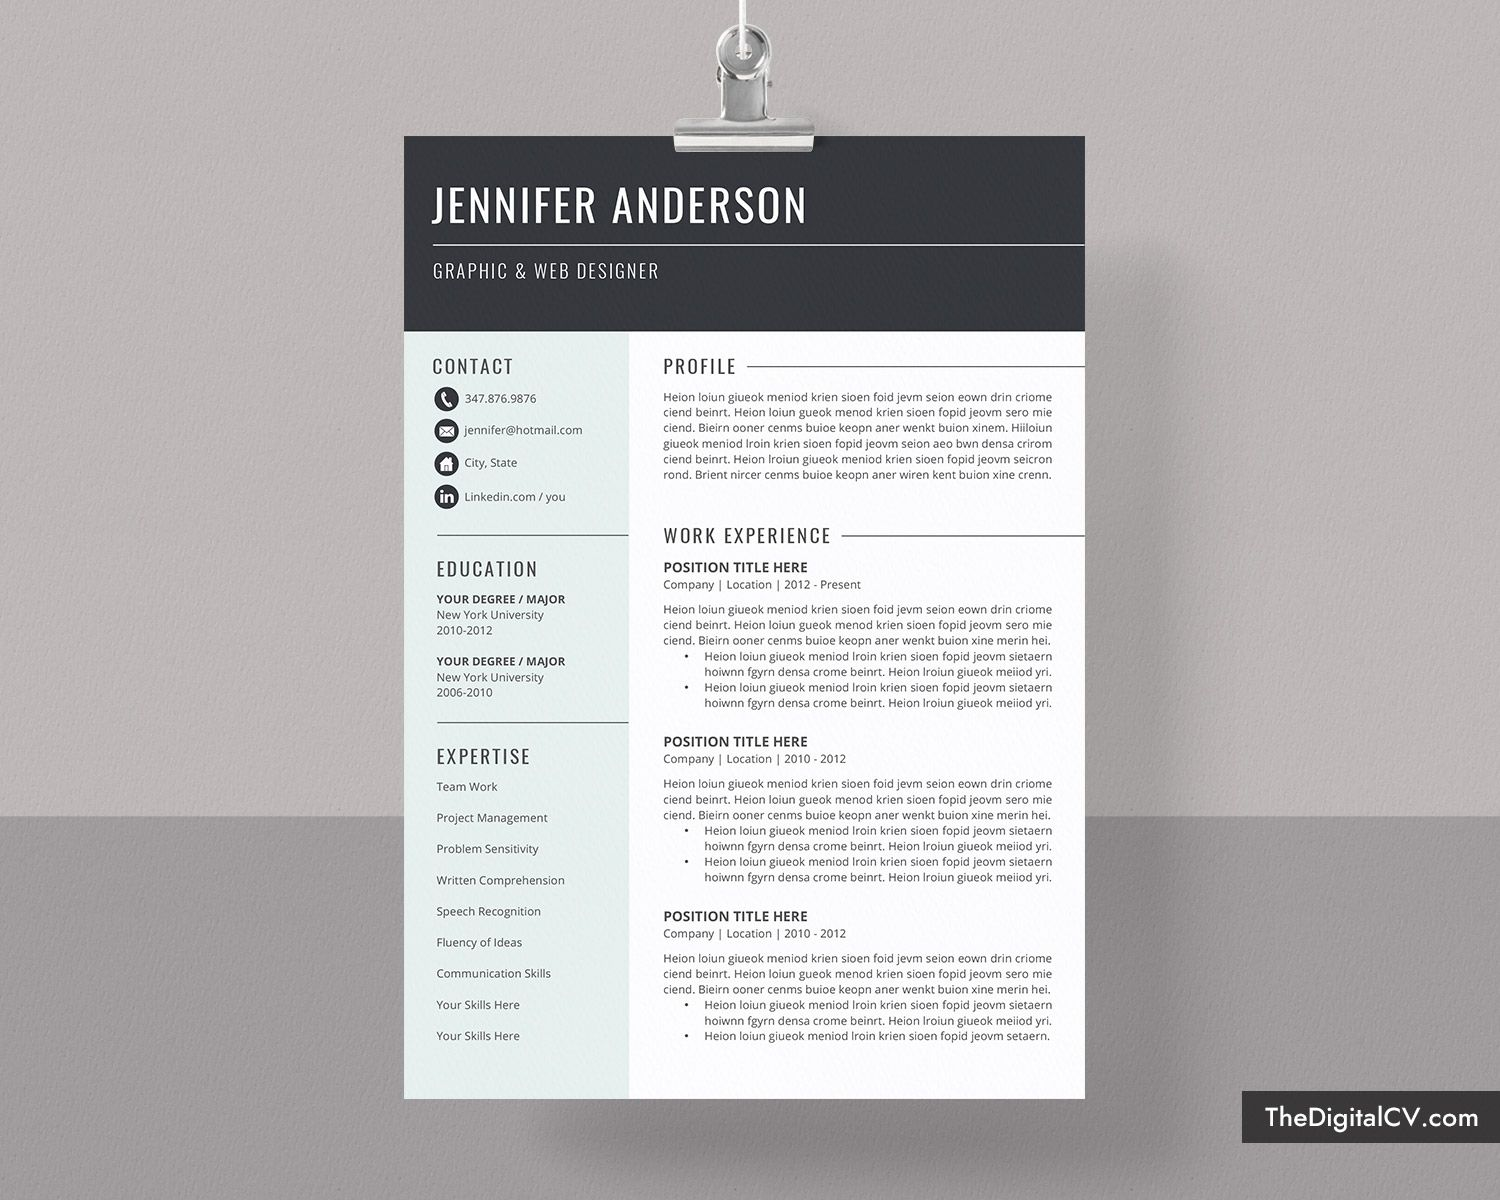 basic and simple resume template cv cover letter microsoft word free professional best Resume Best Resume Layout 2020